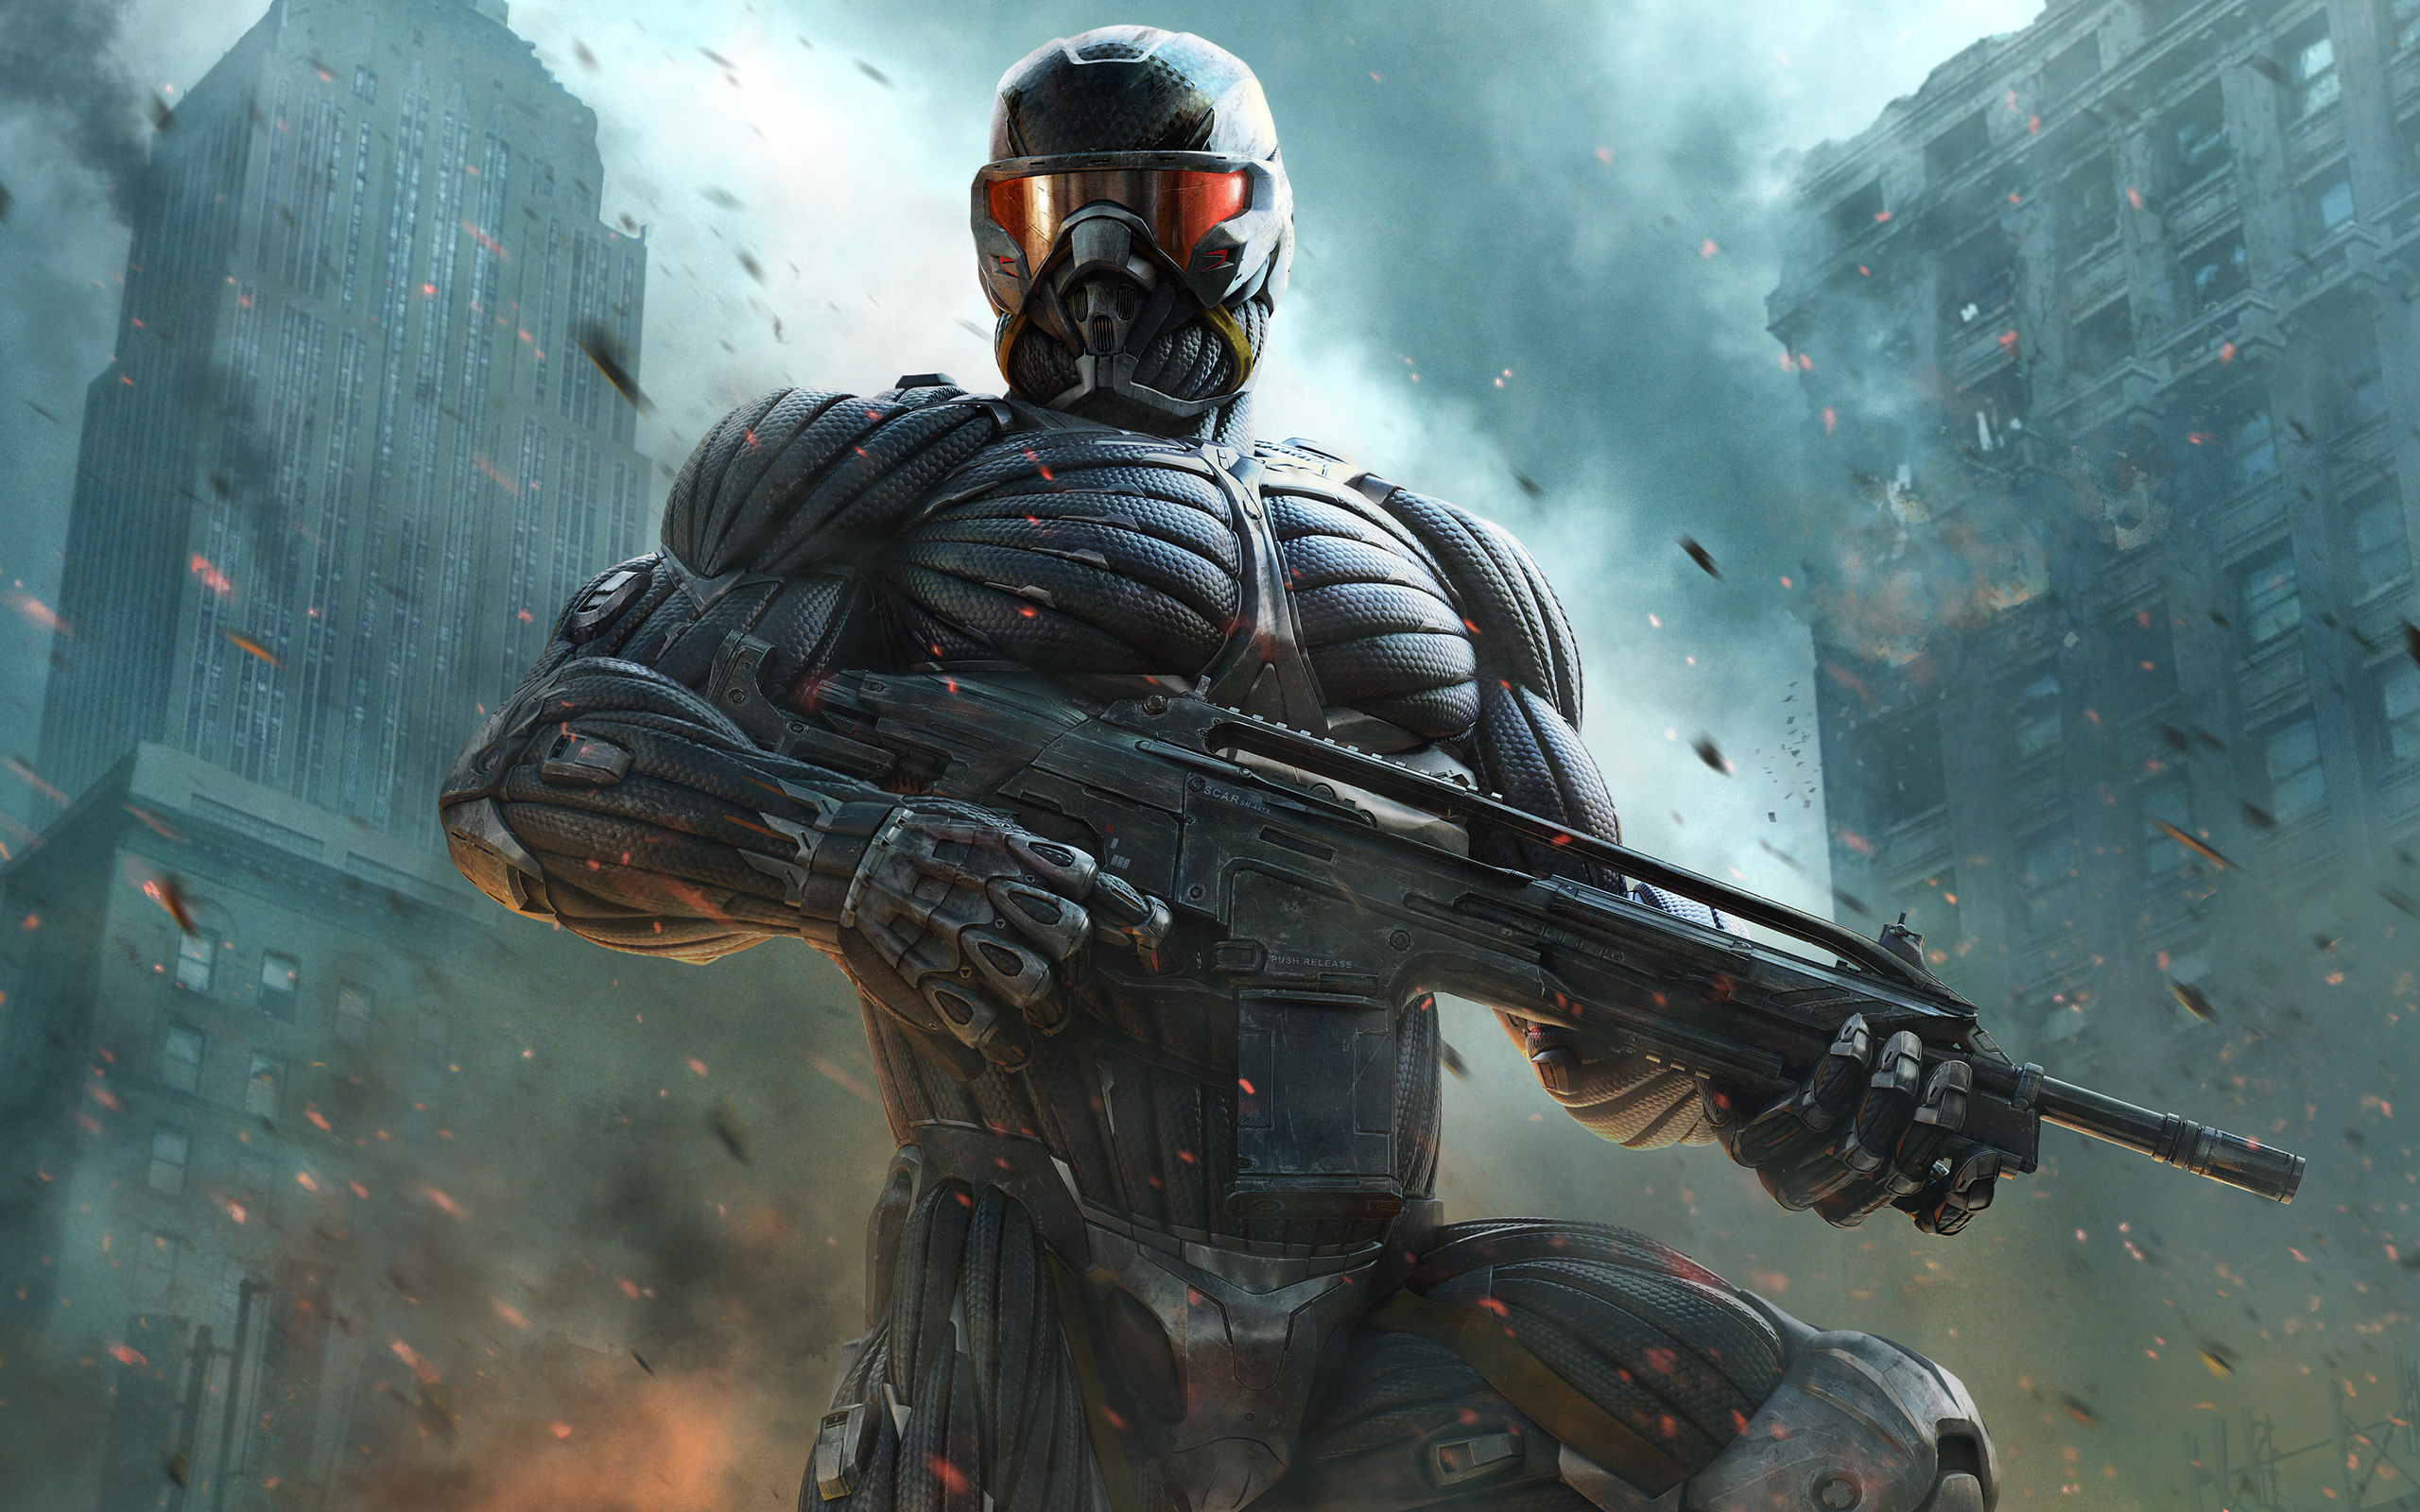 Crysis 2 FPS Game Wallpapers HD Wallpapers 2560x1600